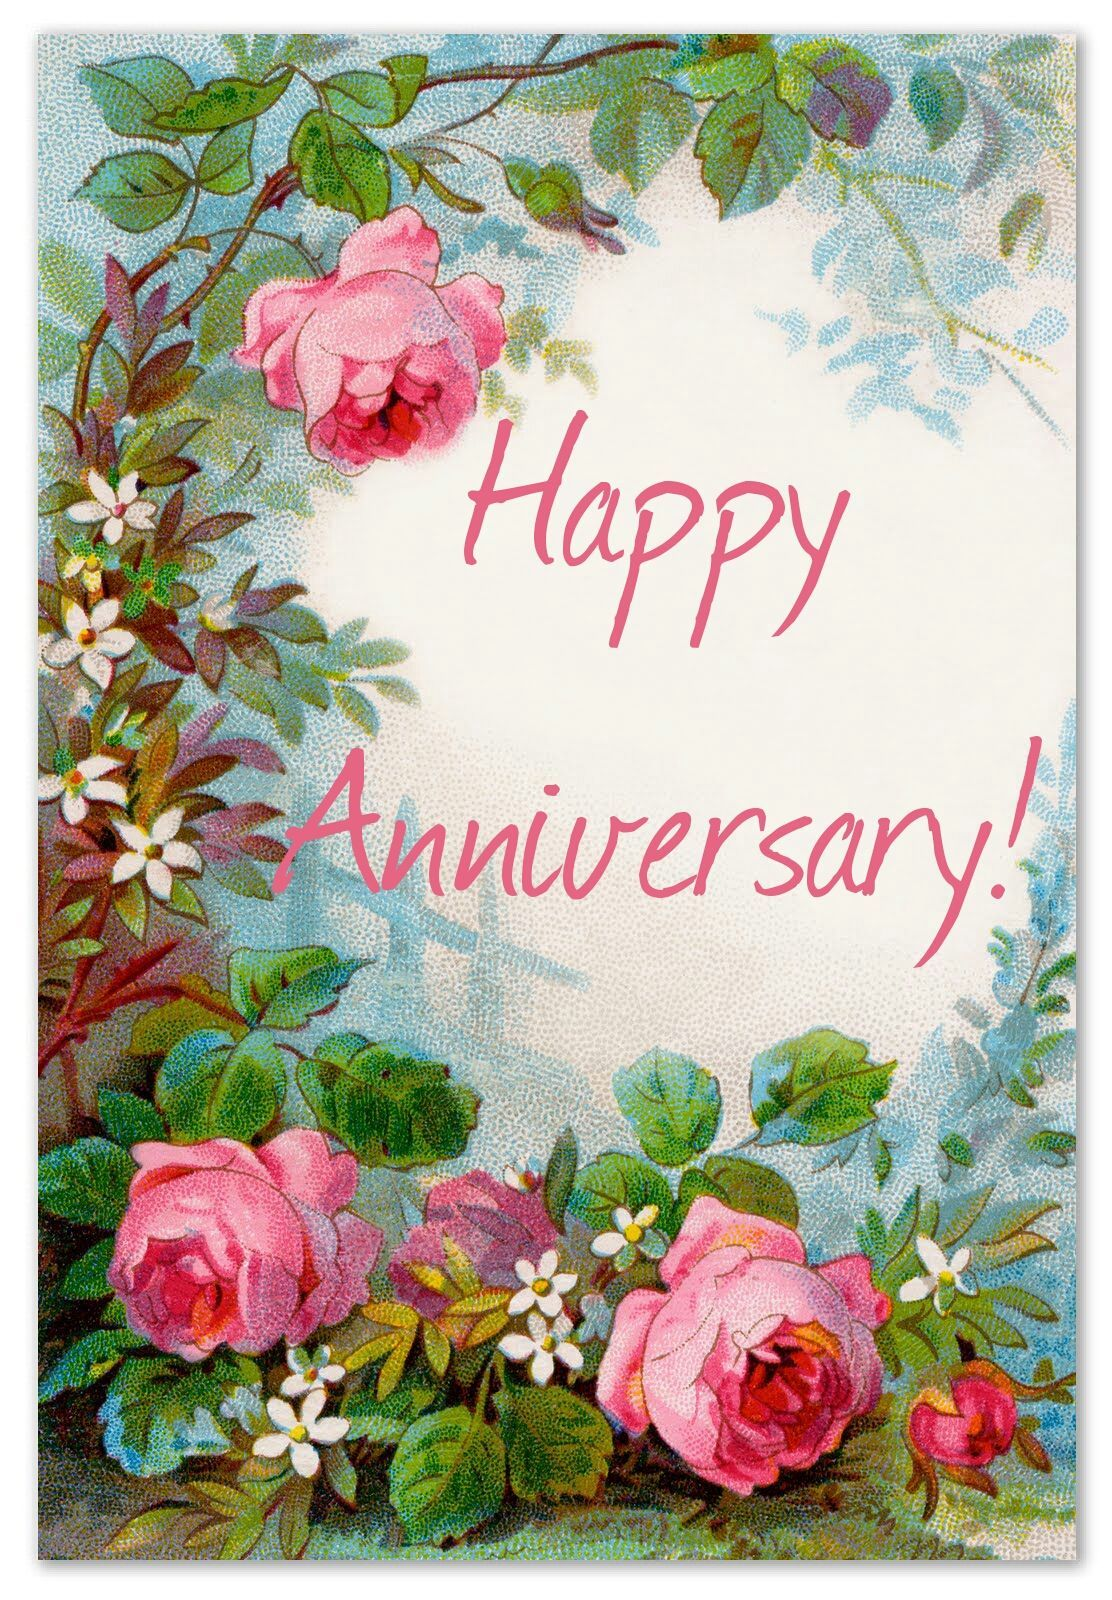 Happy Marriage Anniversary Cards For Friend